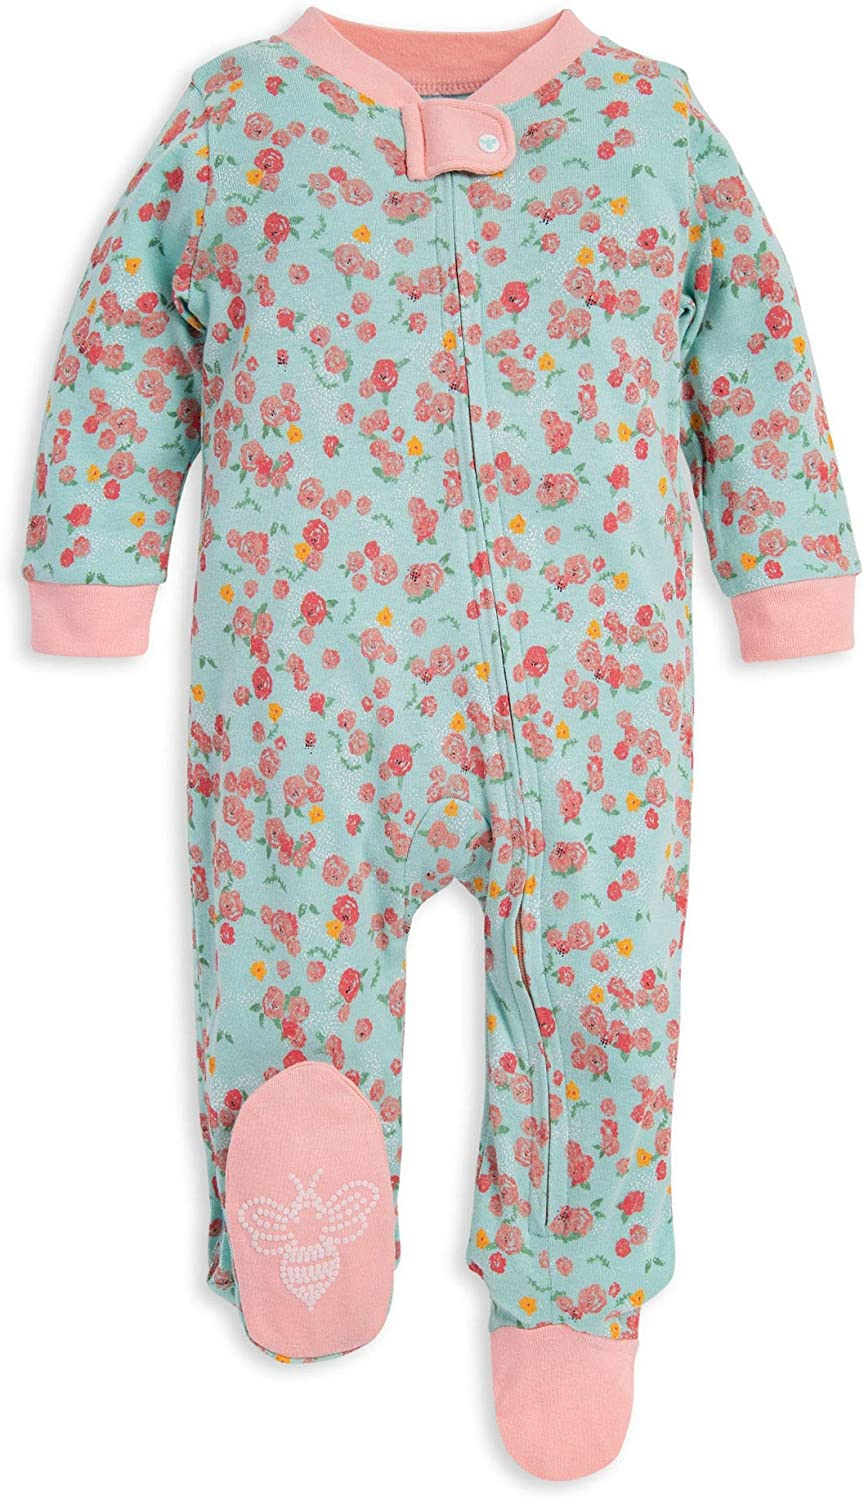 Burt's Bees Baby Unisex Baby Sleep & Play, Organic One-Piece Romper-Jumpsuit PJ, Zip Front Footed Pajama